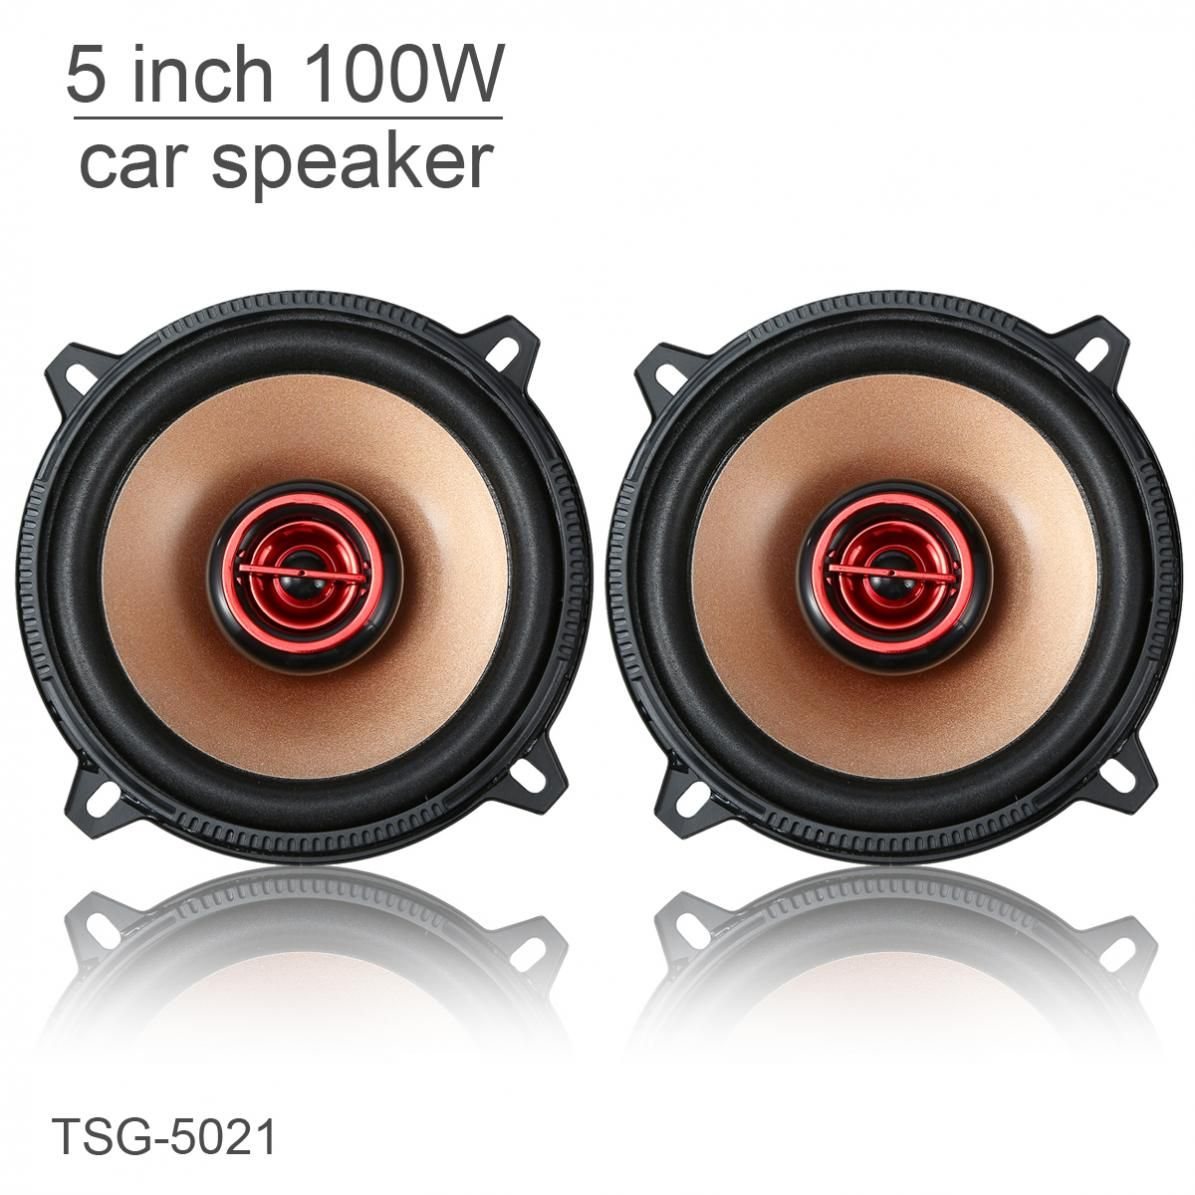 TSG-5021 2pcs 5 Inch 100W 12V Coaxial Full Range Frequency Car Audio Stereo Speaker Automobile Loudspeaker for Cars